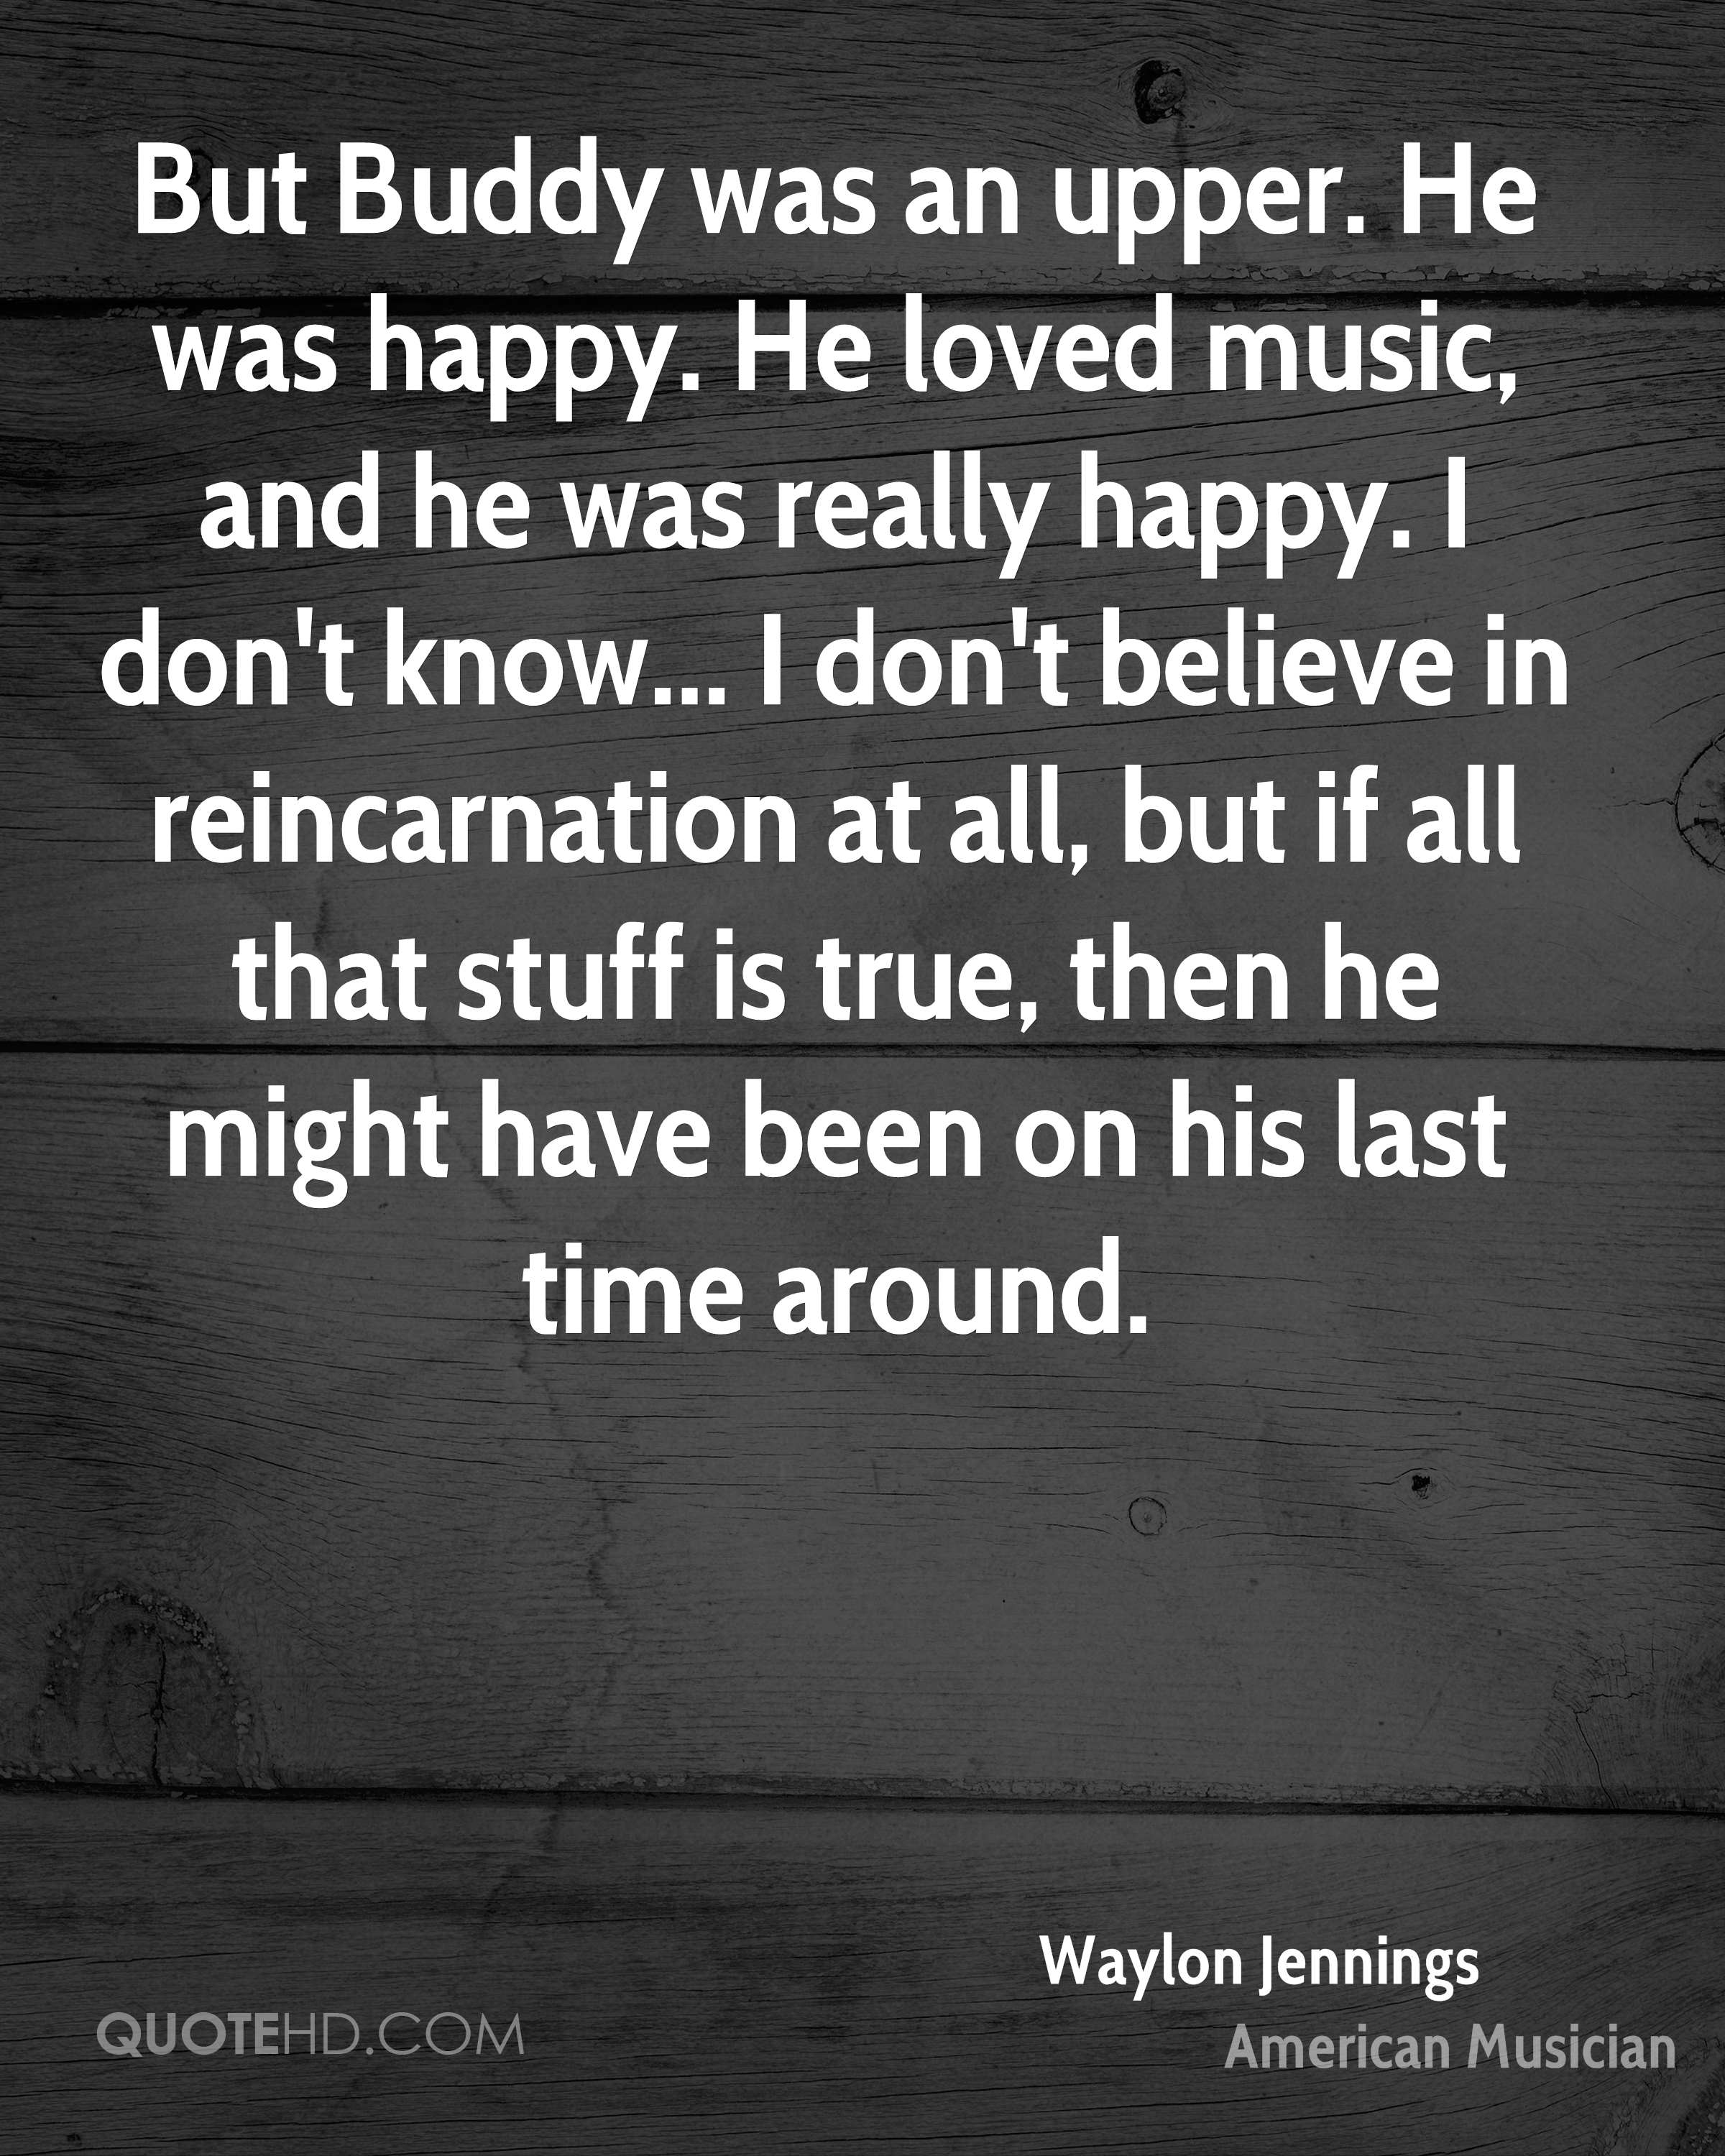 But Buddy was an upper. He was happy. He loved music, and he was really happy. I don't know... I don't believe in reincarnation at all, but if all that stuff is true, then he might have been on his last time around.